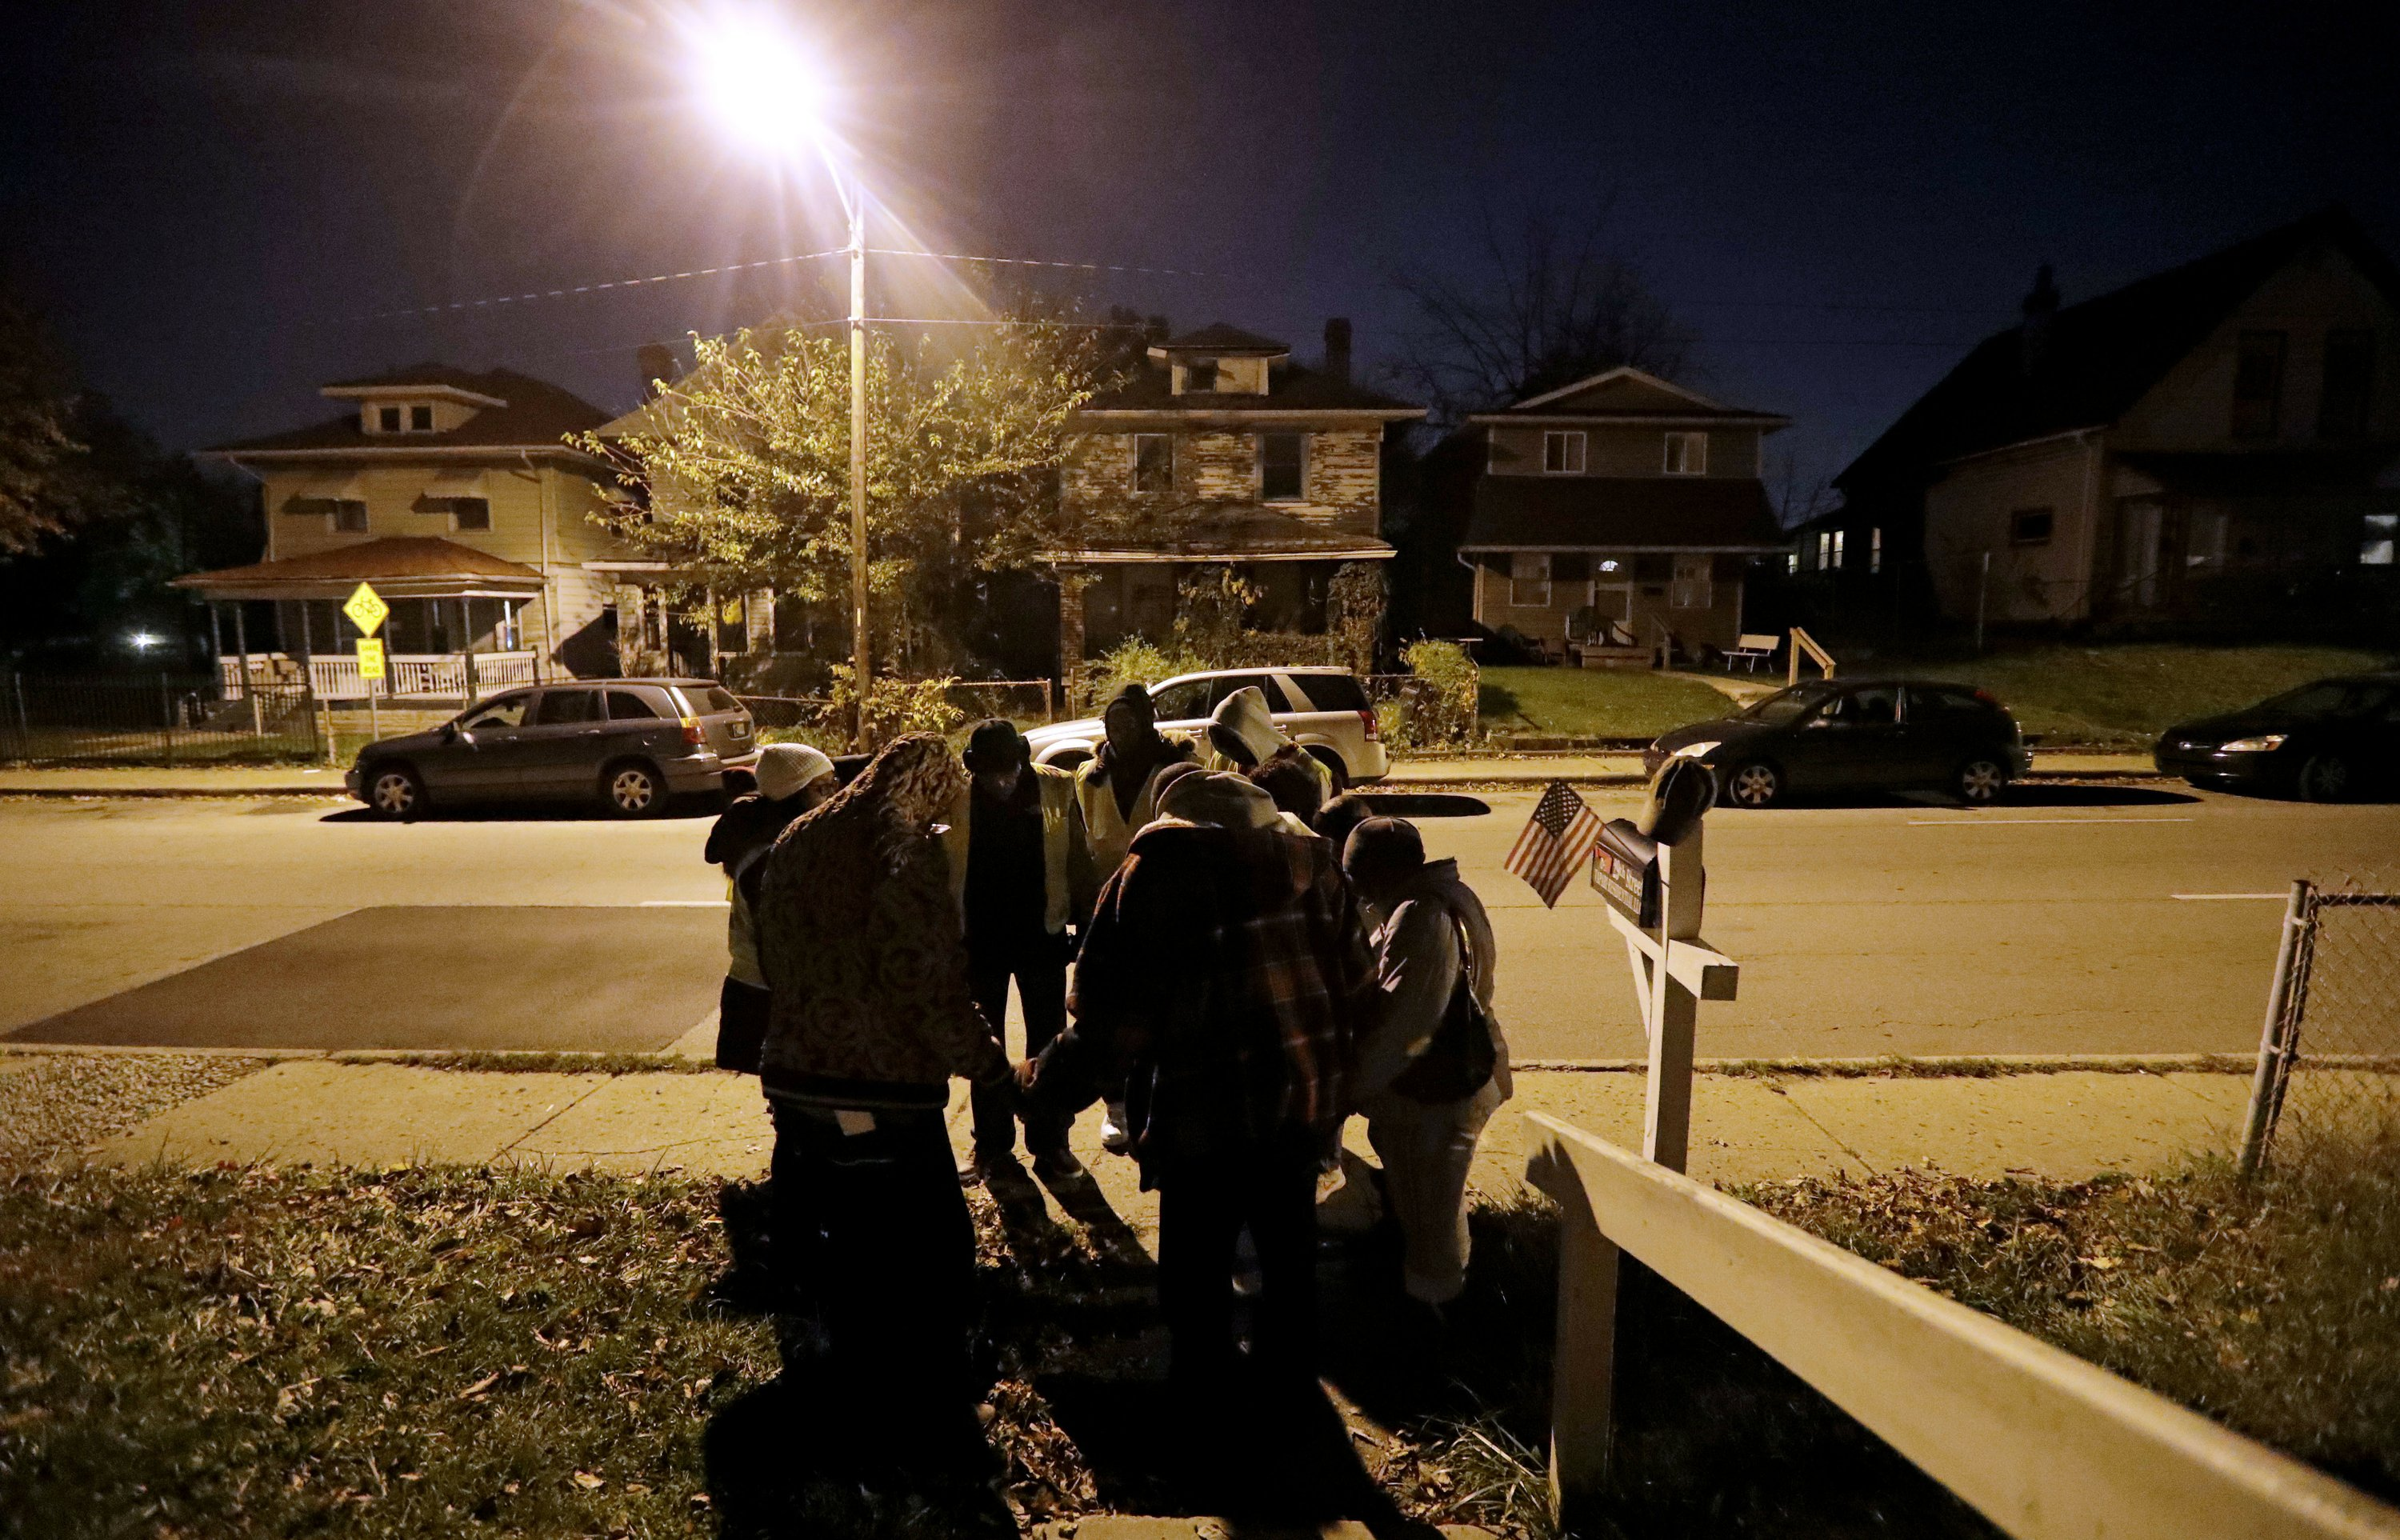 Urban killings rise in clusters as many areas grow safer